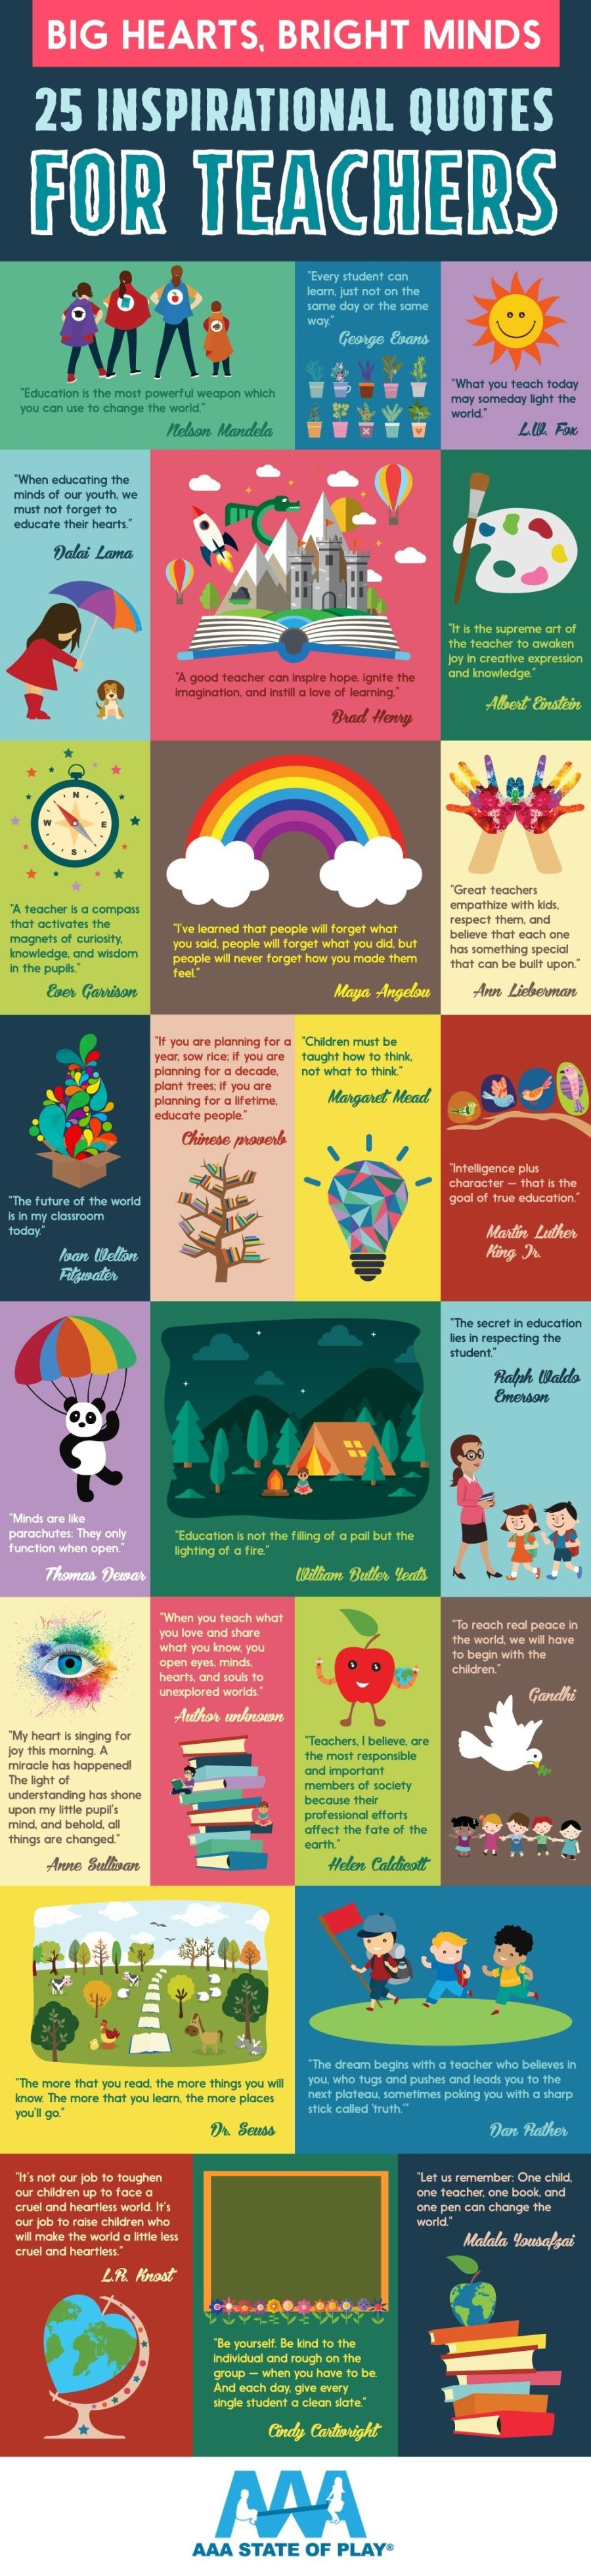 25 Inspirational Quotes for Teachers Infographic - 151 Inspirational Quotes that will Rock your Painted Rocks